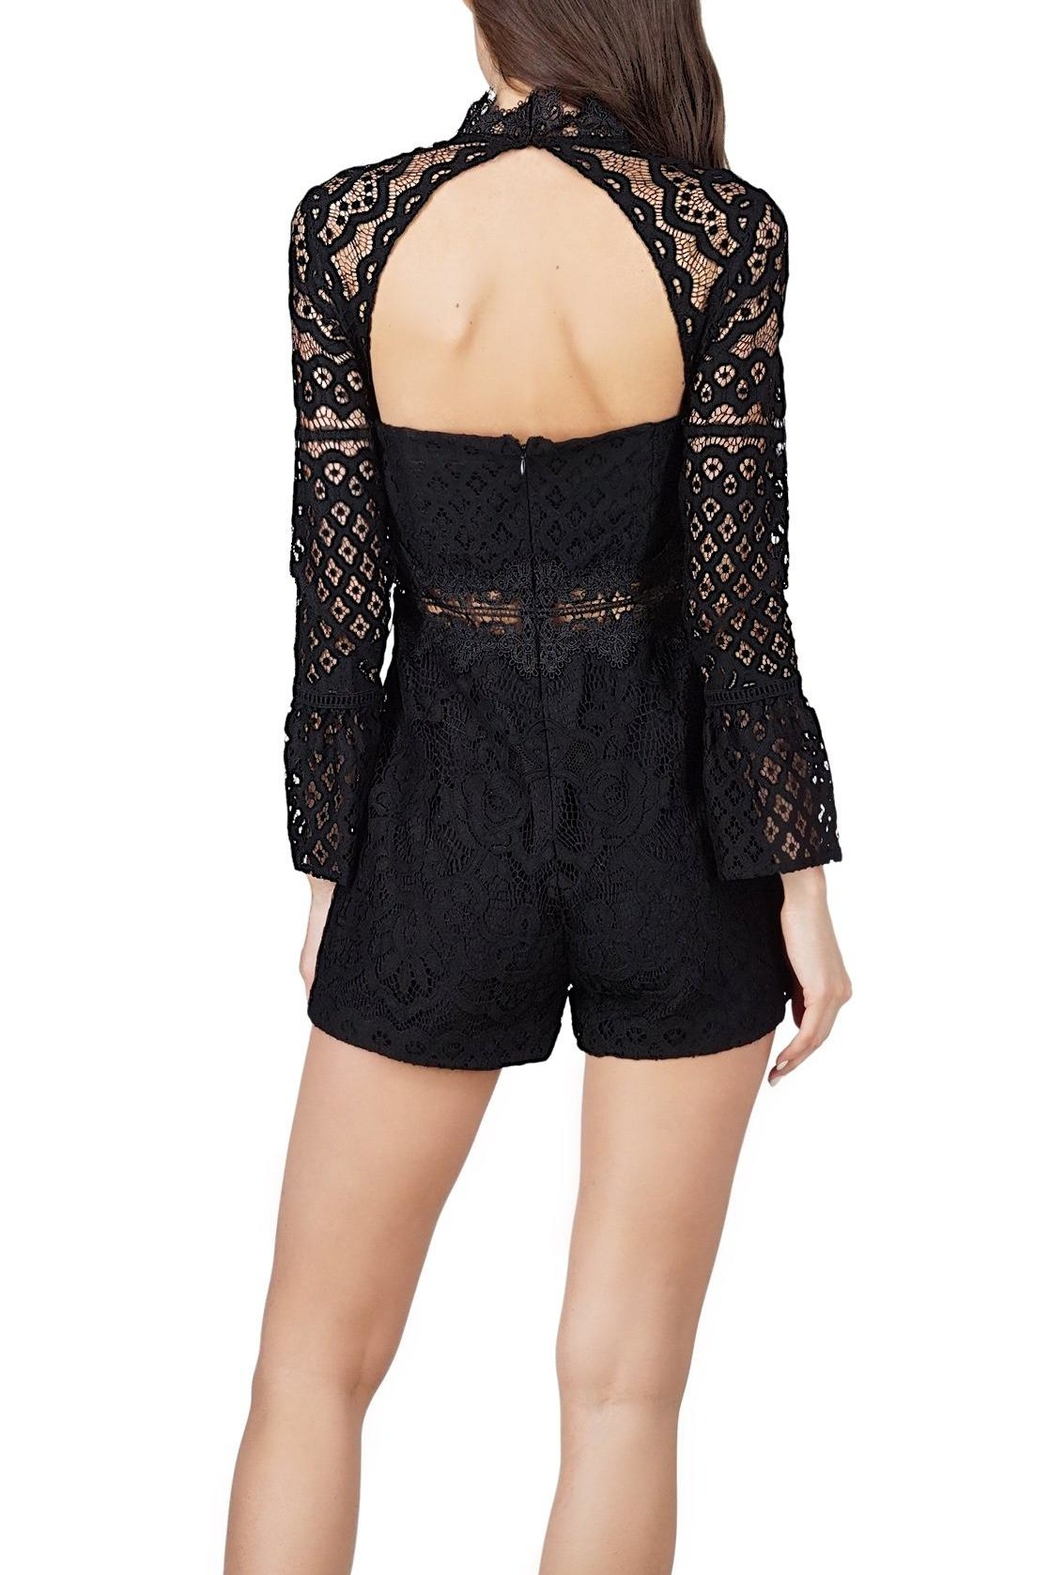 Adelyn Rae Lace Romper - Front Full Image